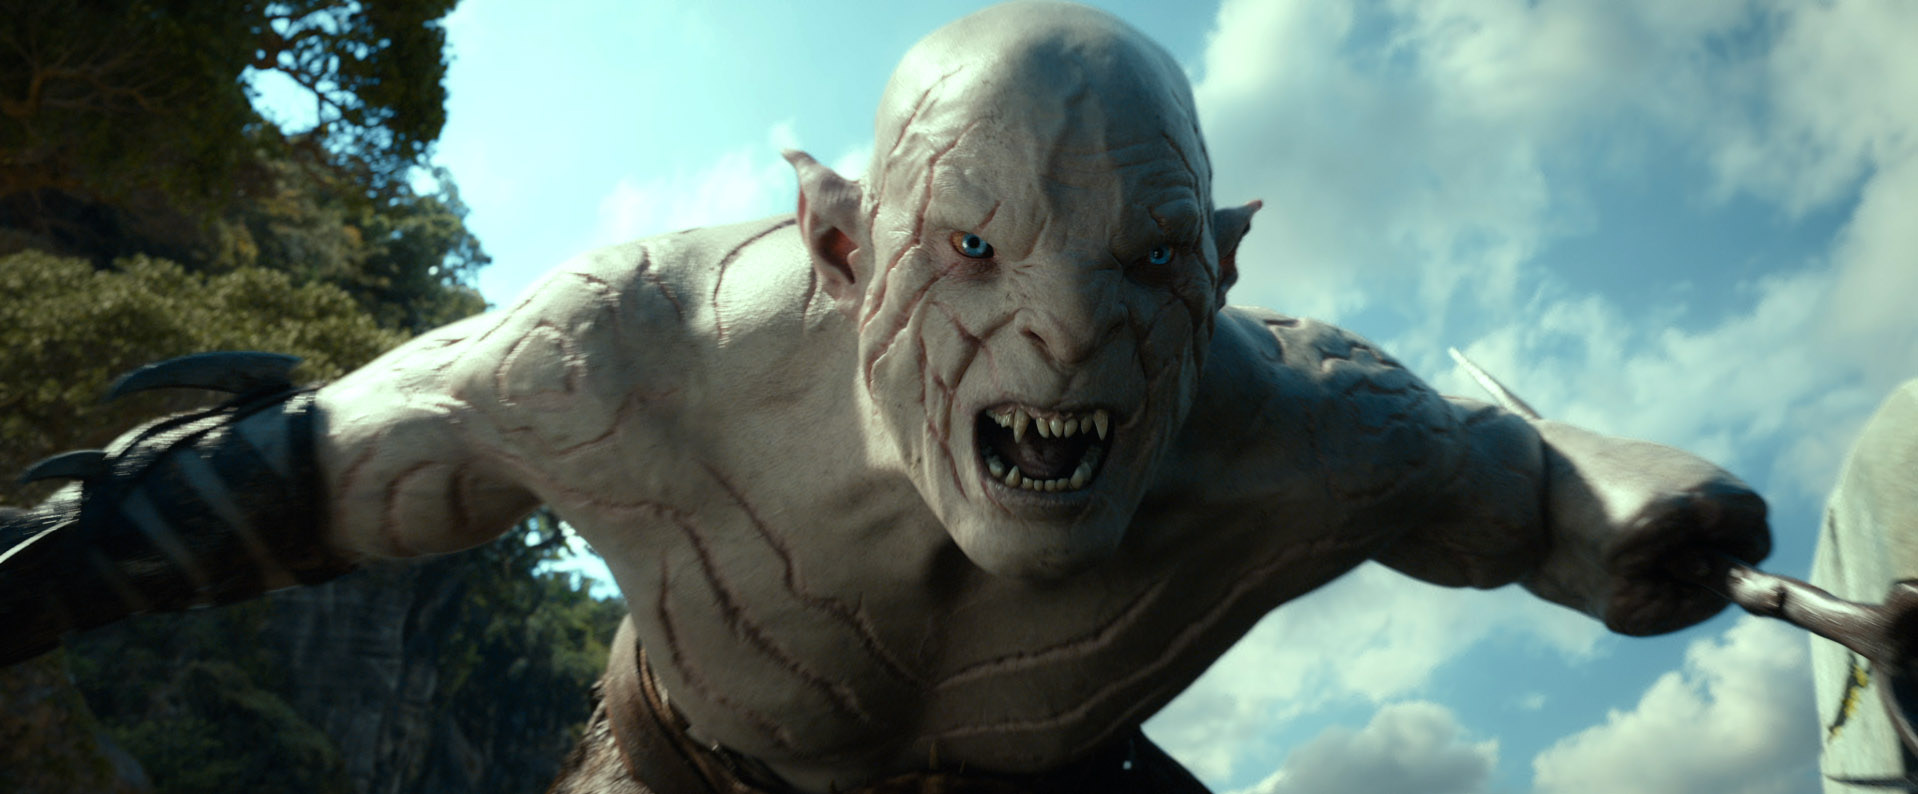 Azog-The-Hobbit-The-Desolation-of-Smaug